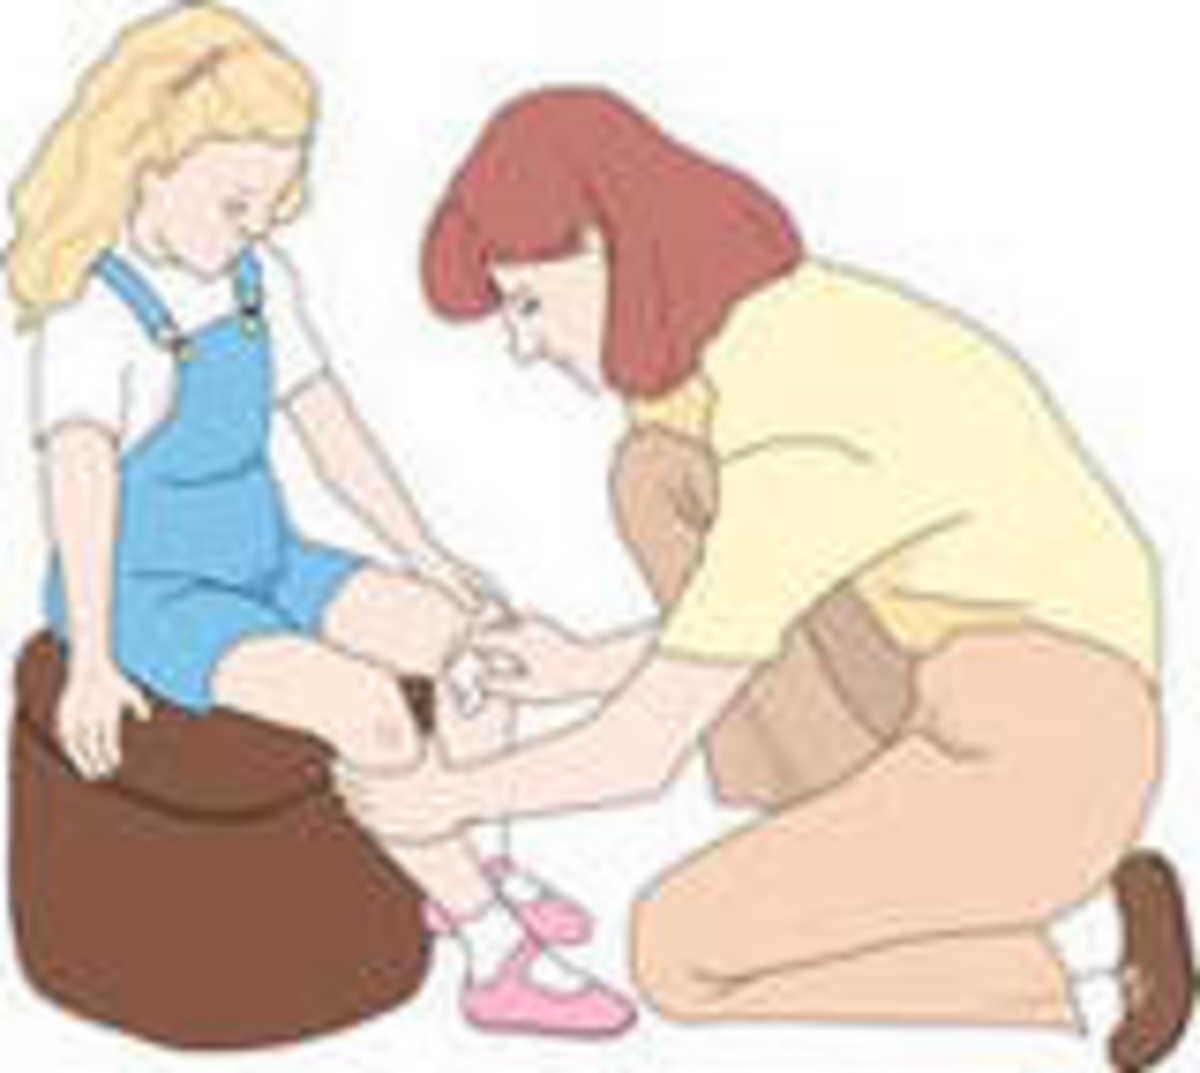 First Aid in school needs willing adults - first and foremost.